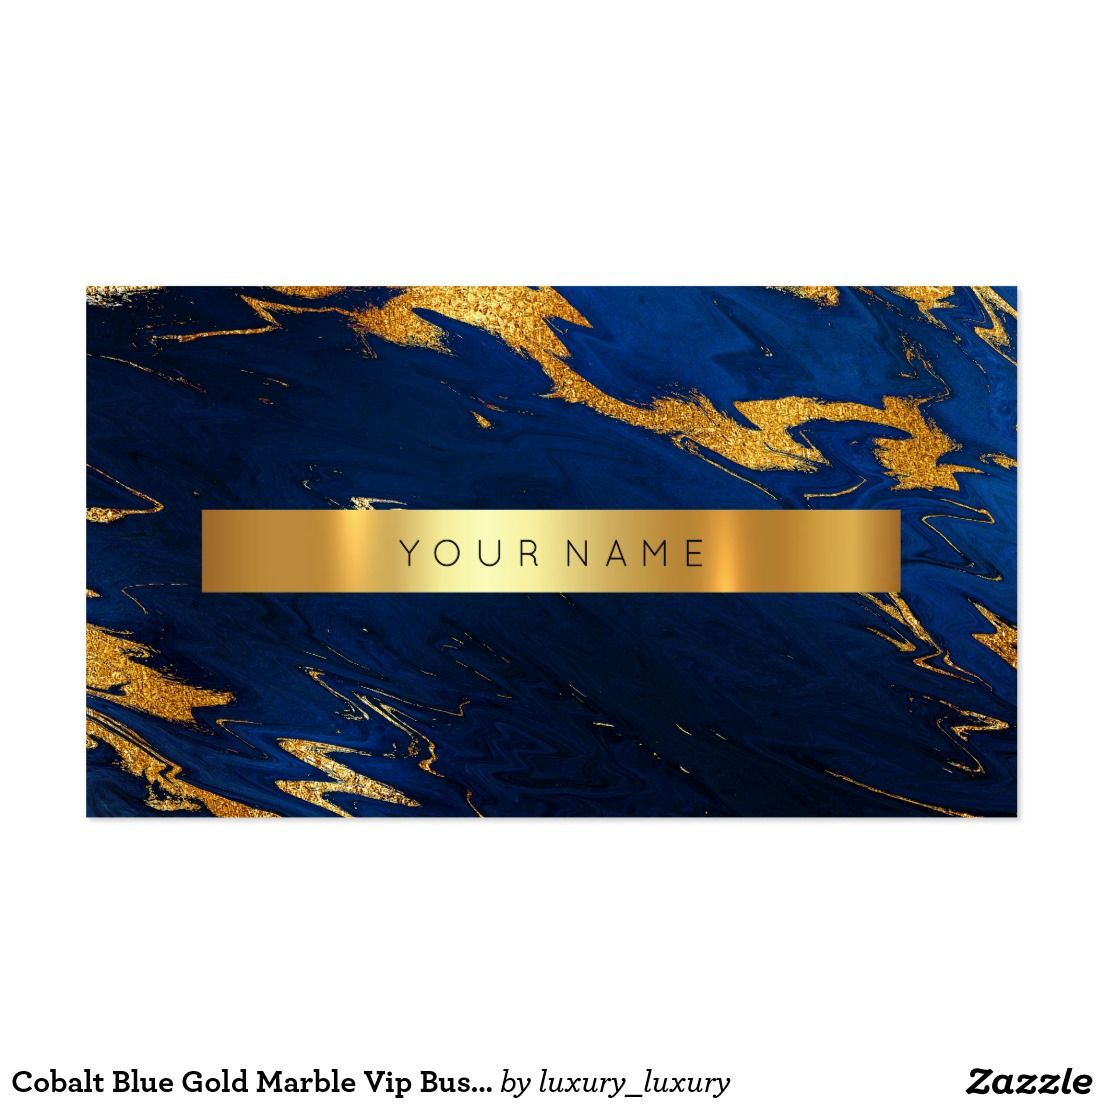 Cobalt Blue Gold Marble Vip Business Card | Brand Identity Ideas ...